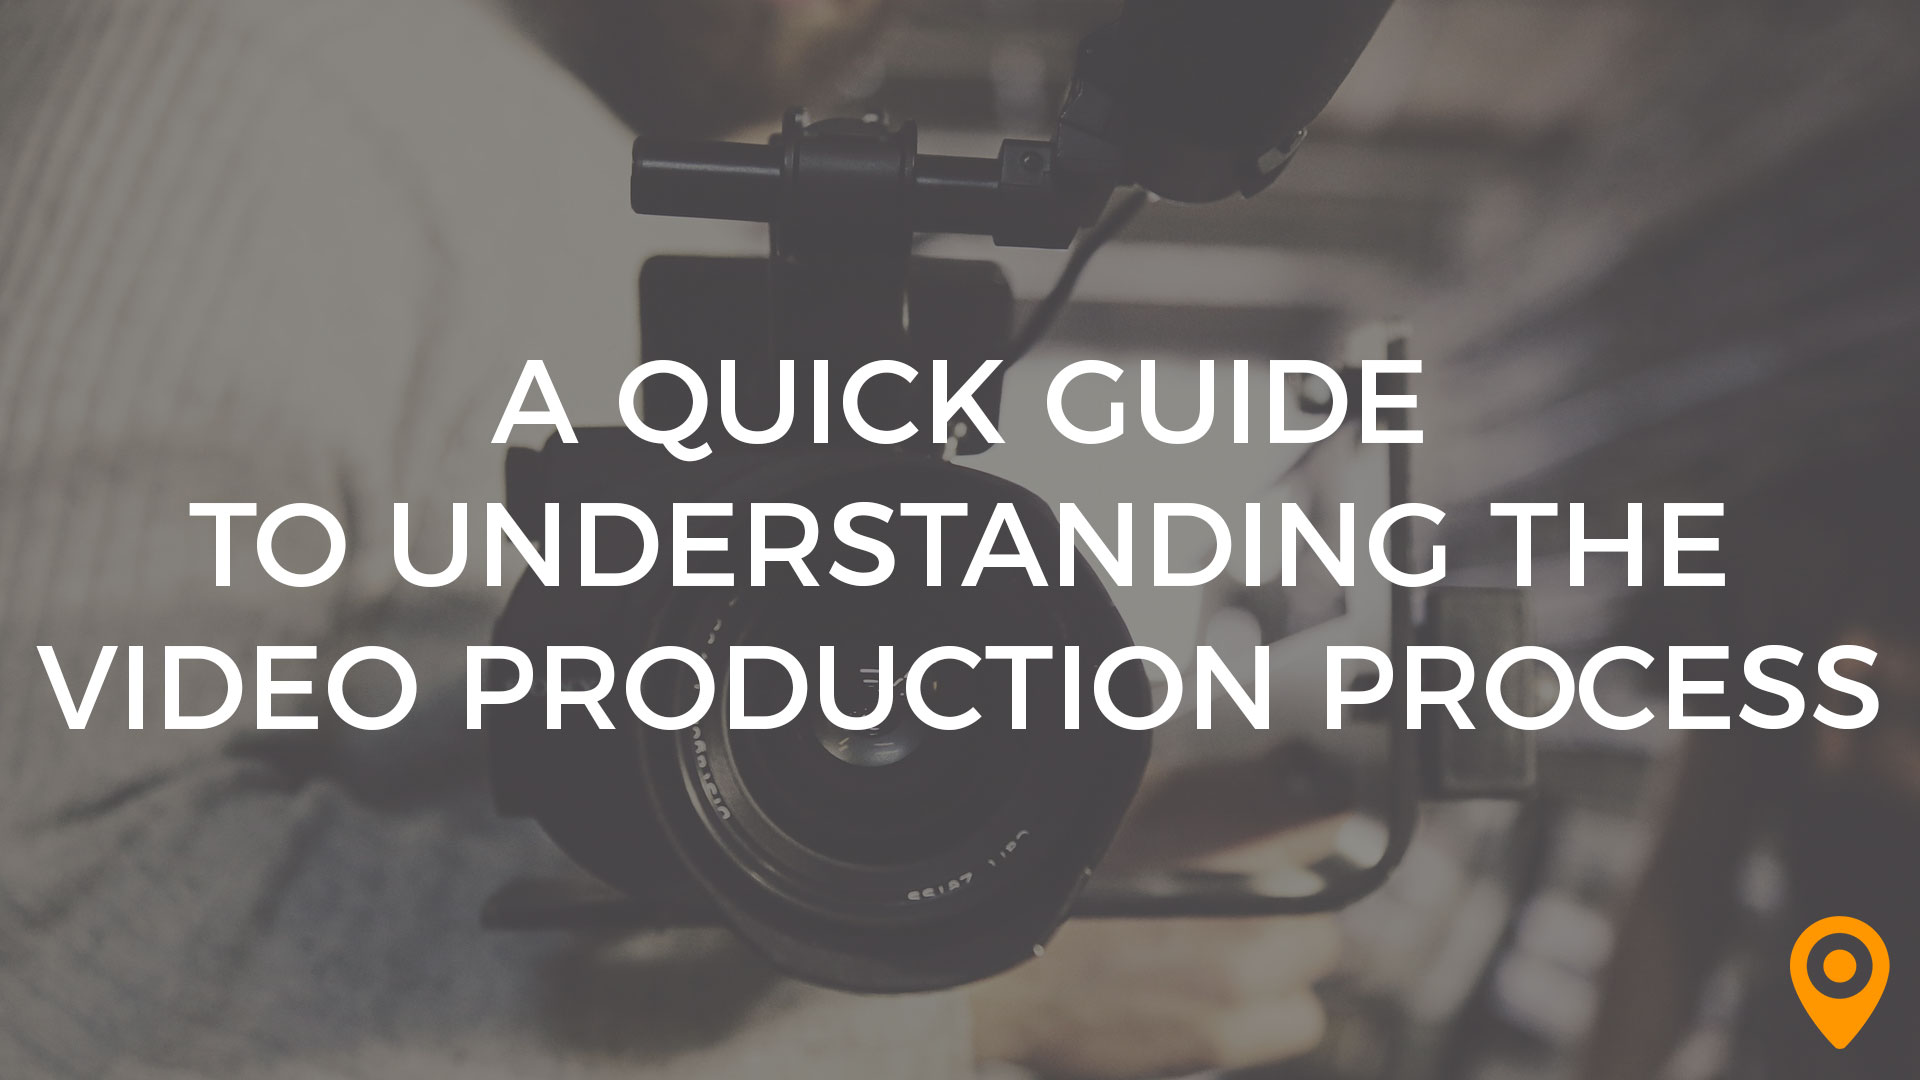 Quick Guide to Understanding the Video Production Process